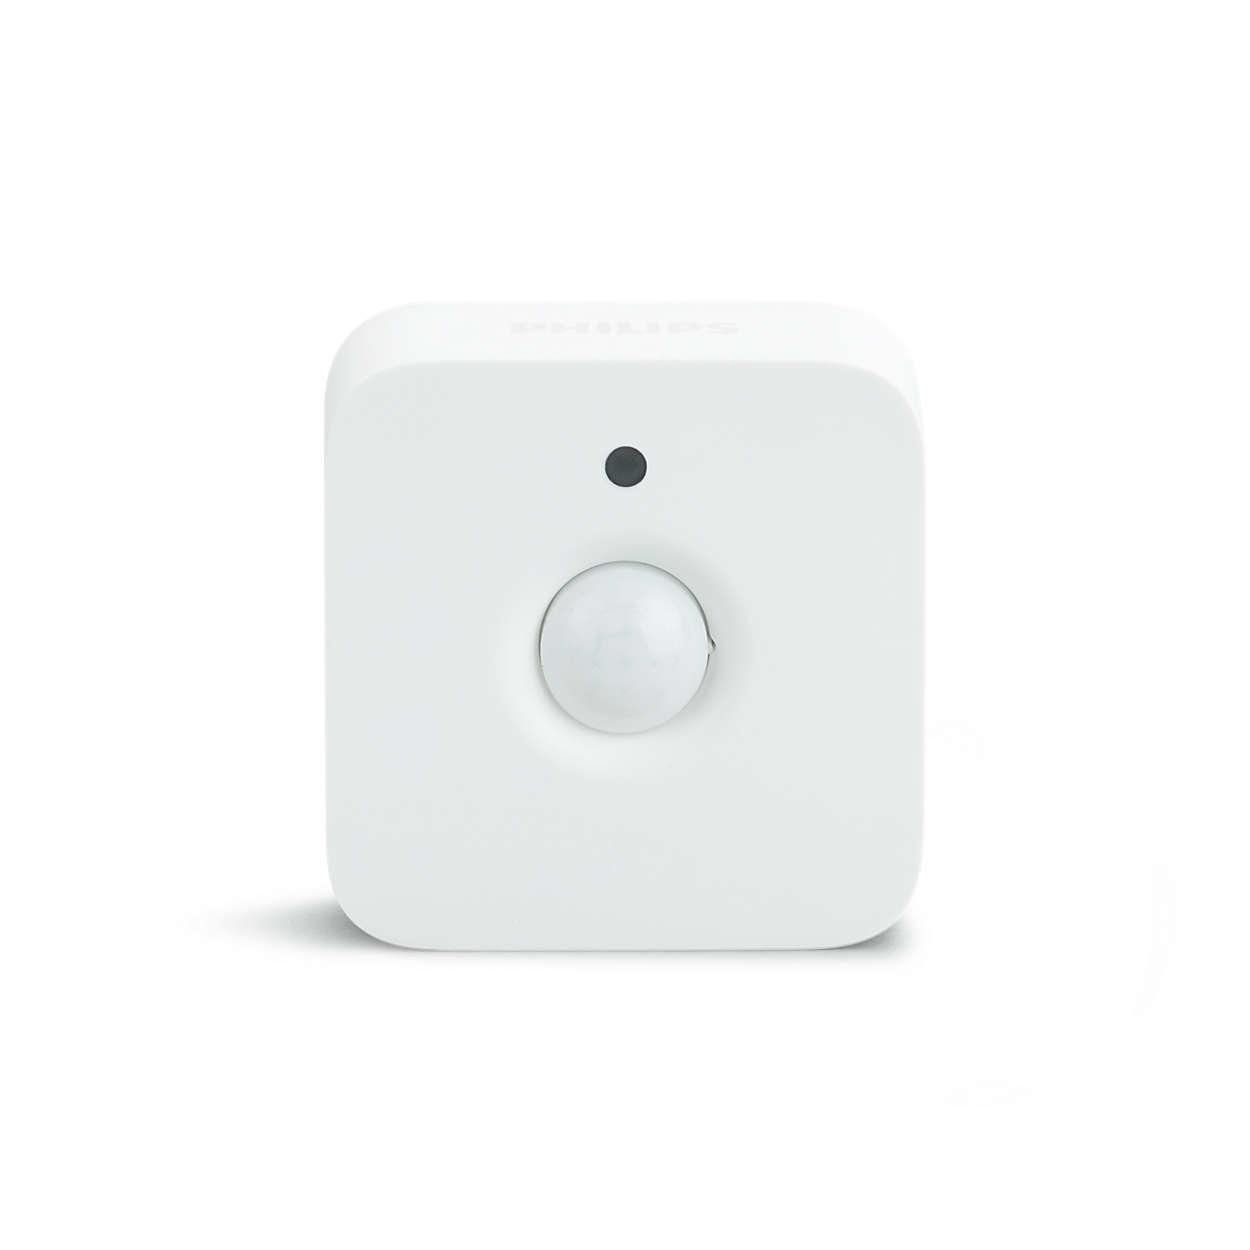 https://www02.cp-static.com/objects/high_pic/3/39c/1350038349_verlichting-accessoires-philips-hue-bewegingssensor-ip42-55-x-20-x-55-mm-white-8718696743171.jpg